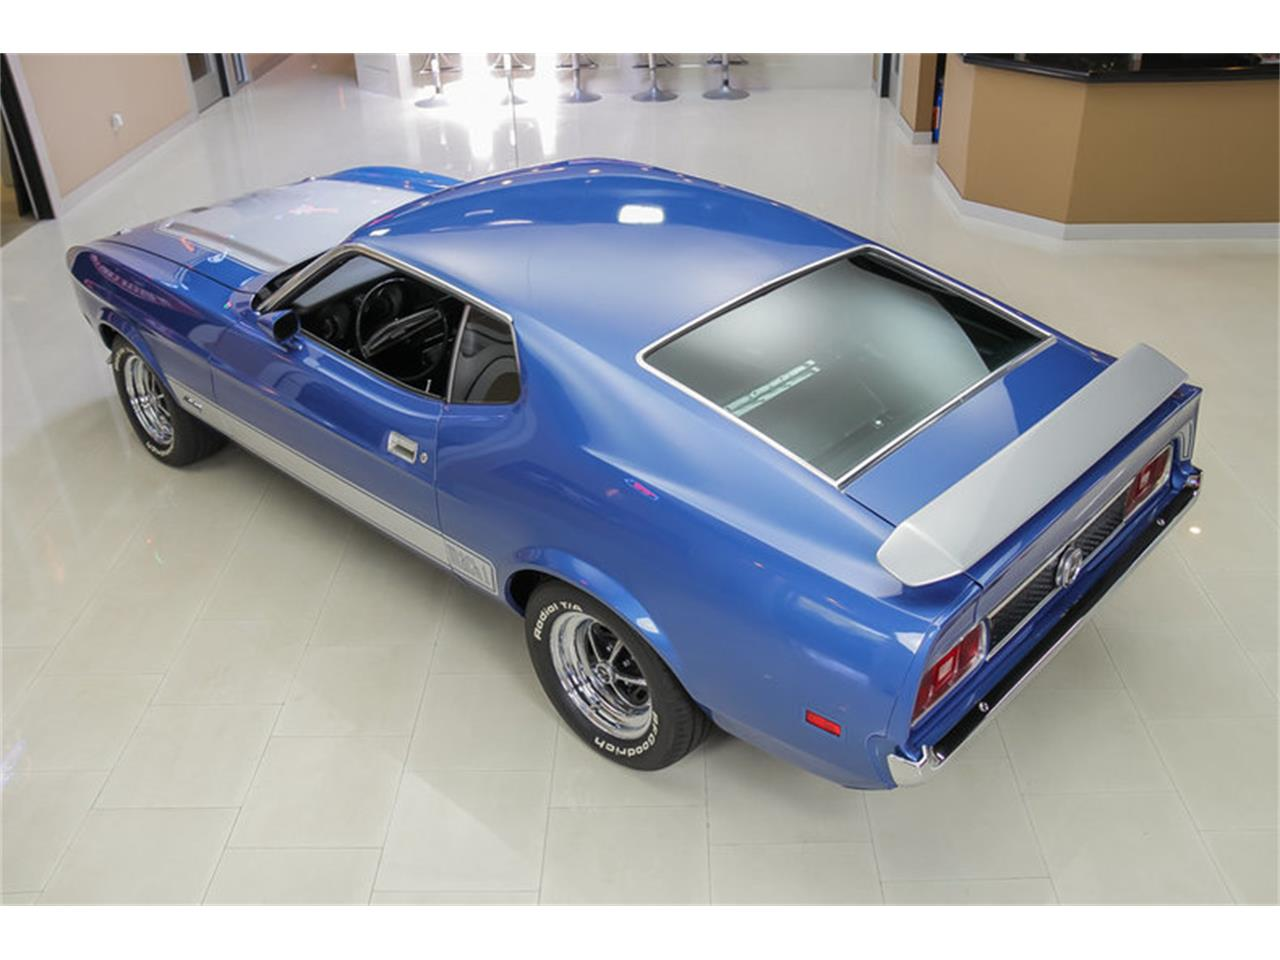 Large Picture of '73 Mustang Mach 1 Q Code located in Michigan Offered by Vanguard Motor Sales - JDX1